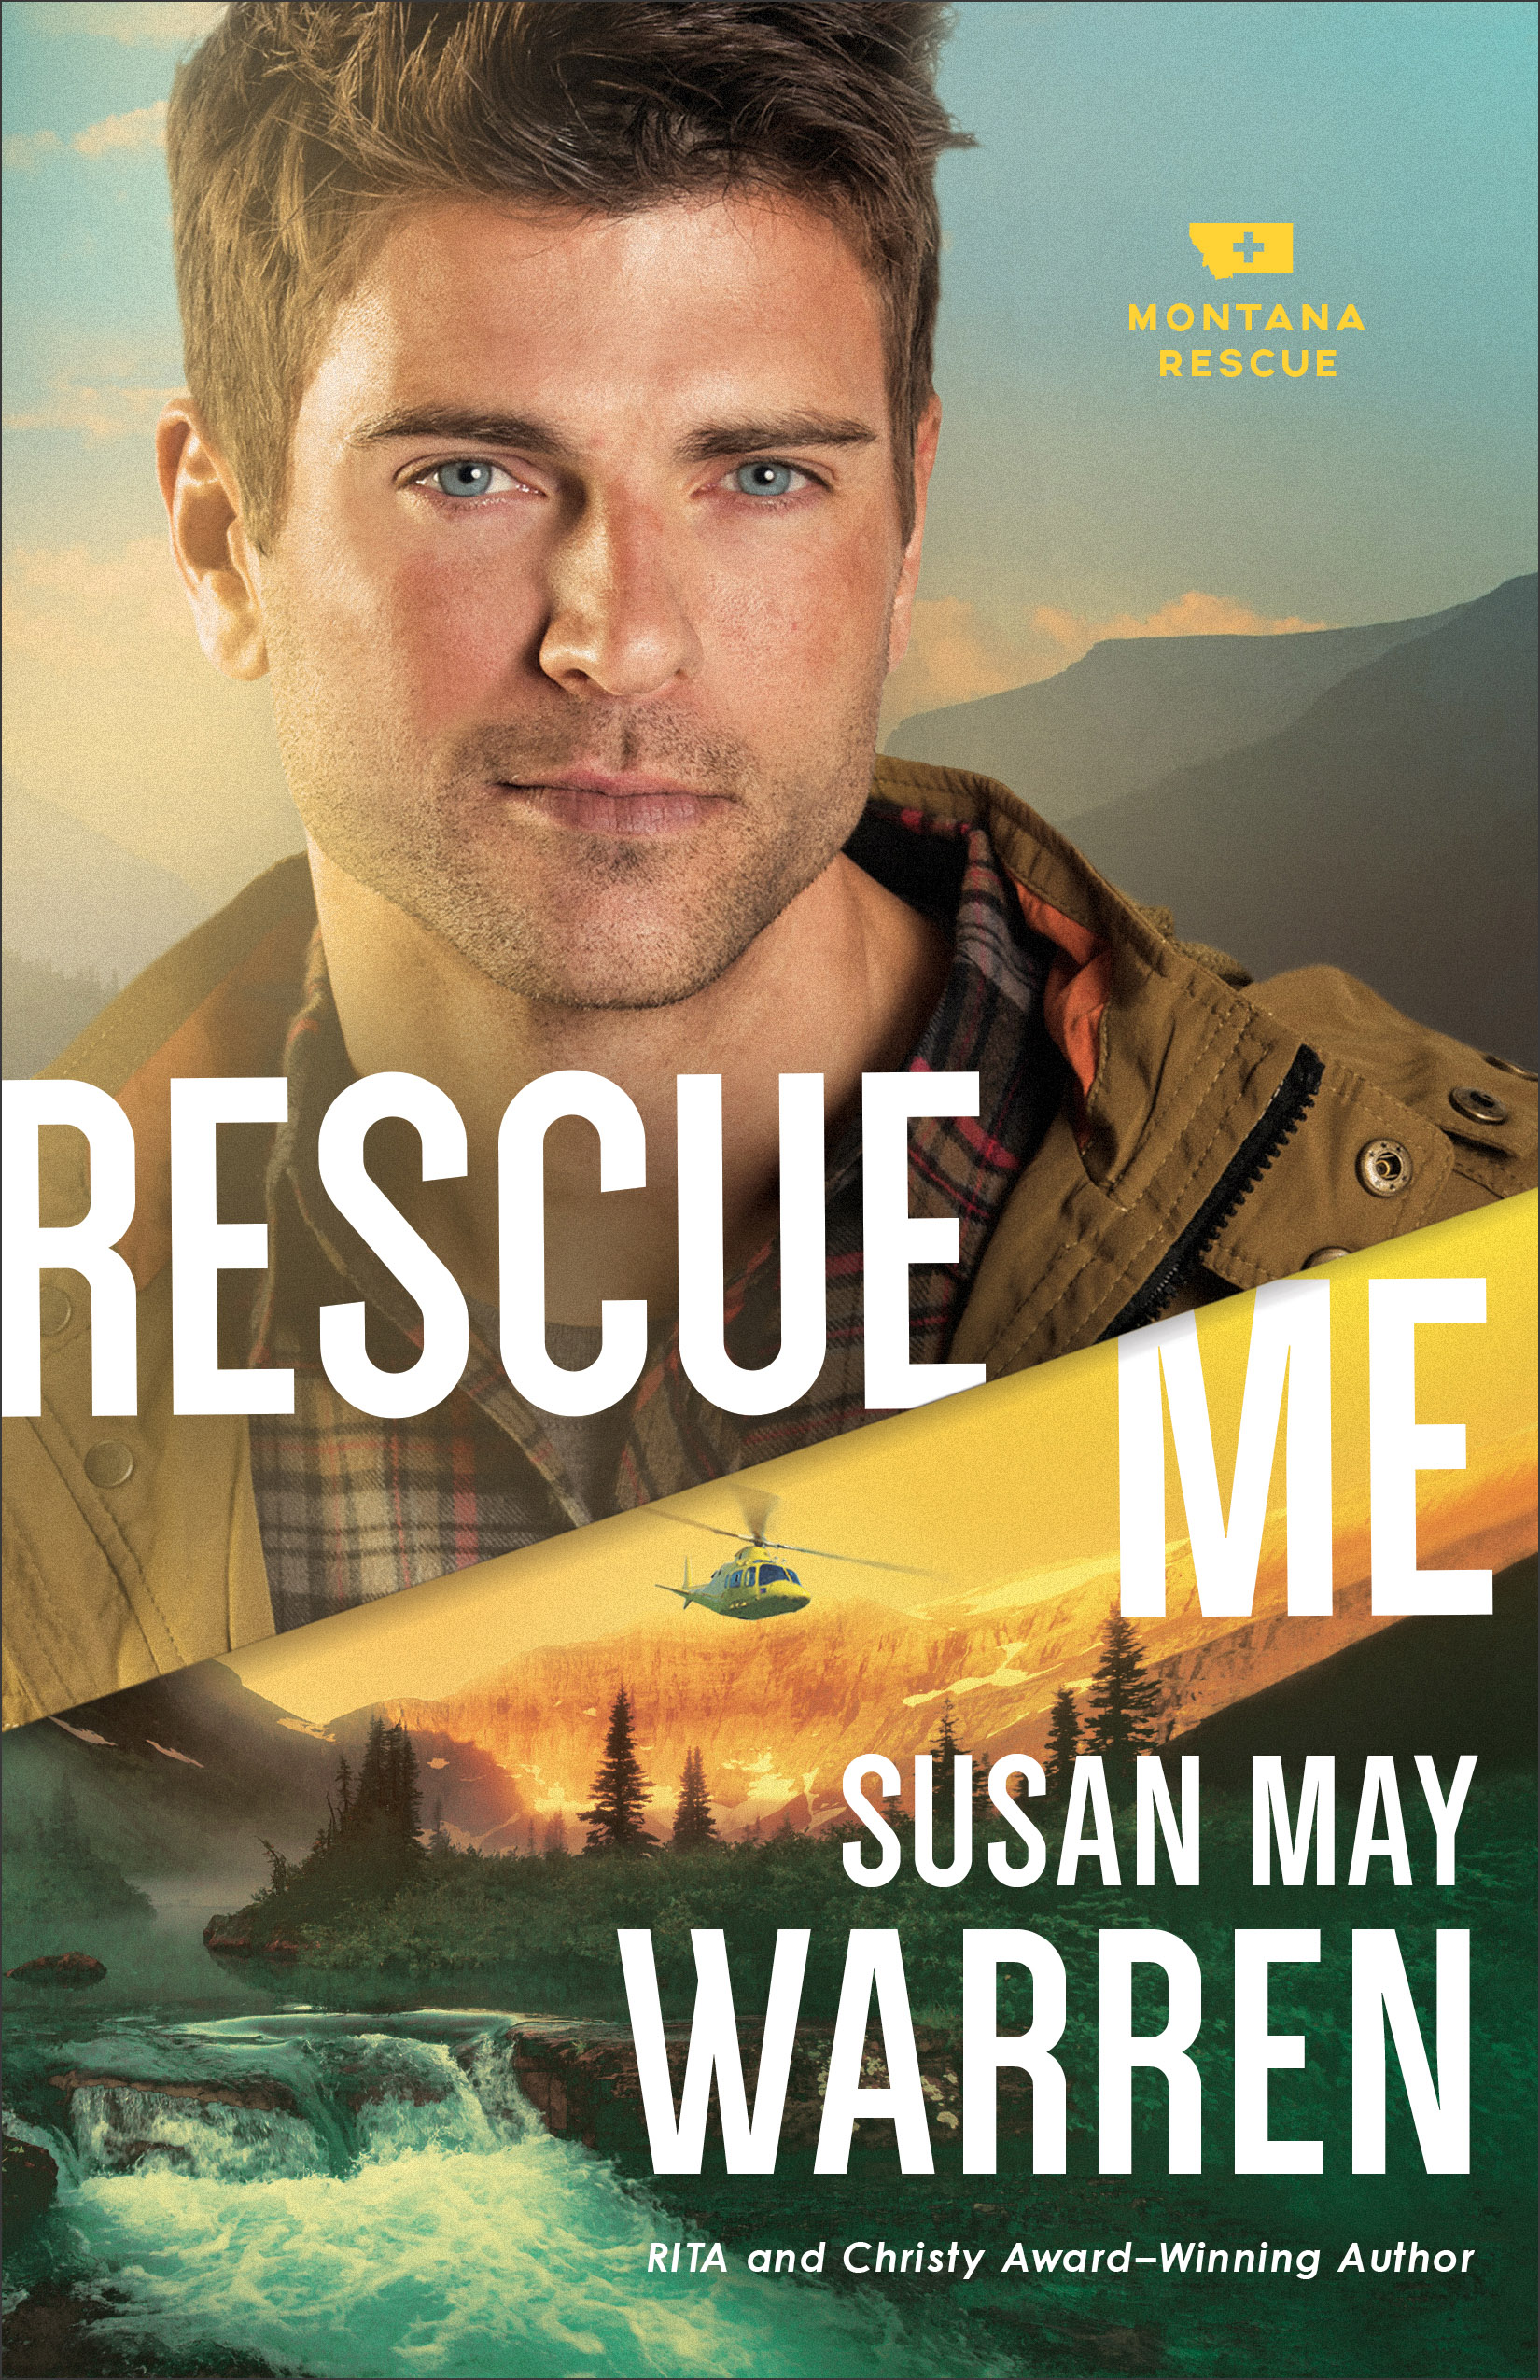 Book review of Rescue Me by Susan May Warren (Revell) by papertapepins